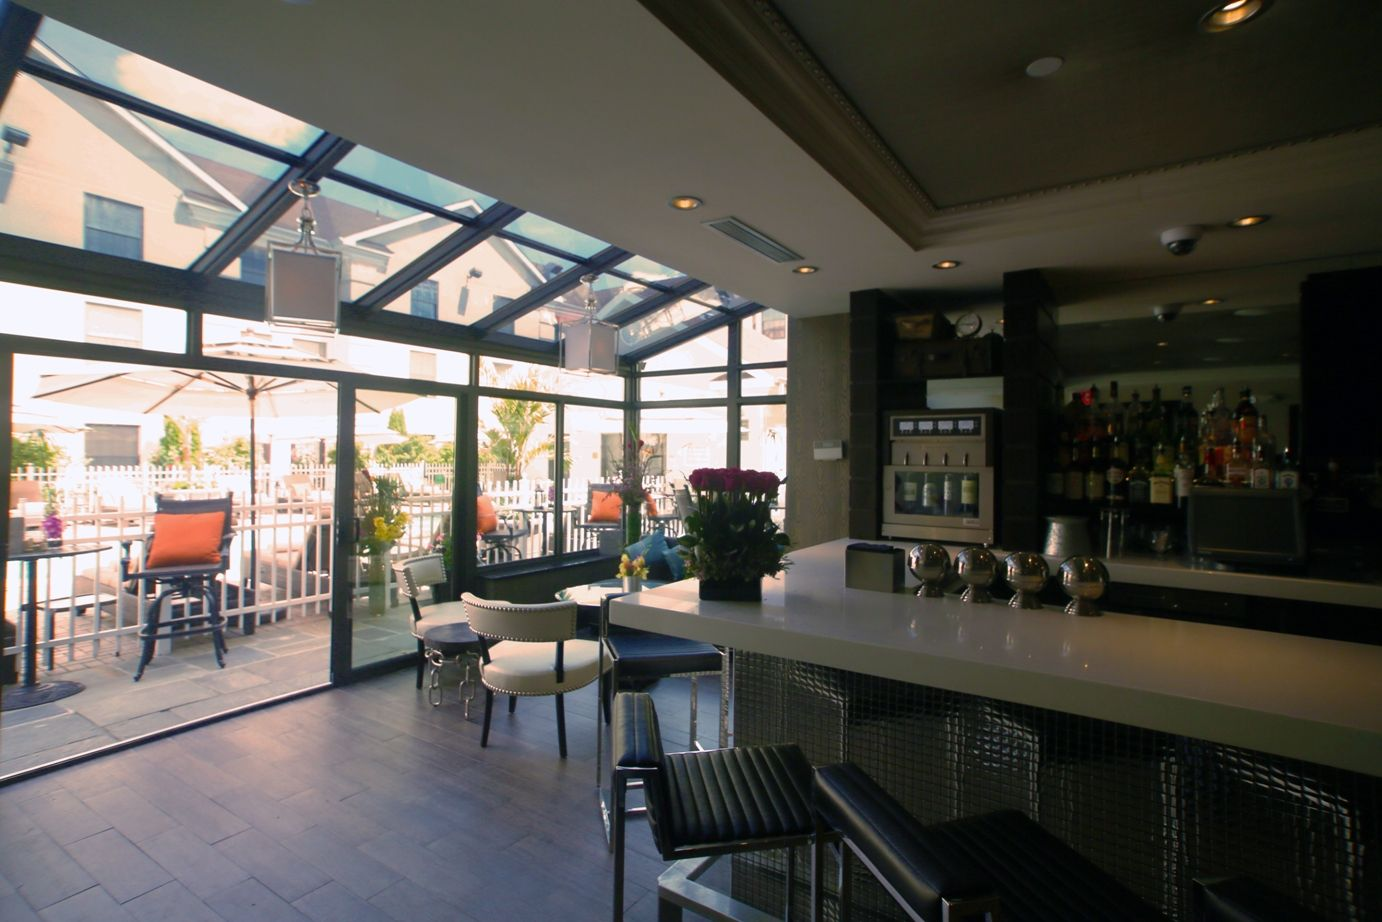 Wine Bar Lounge At The Inn Fox Hollow Allows For Direct Access To Pool Courtyard